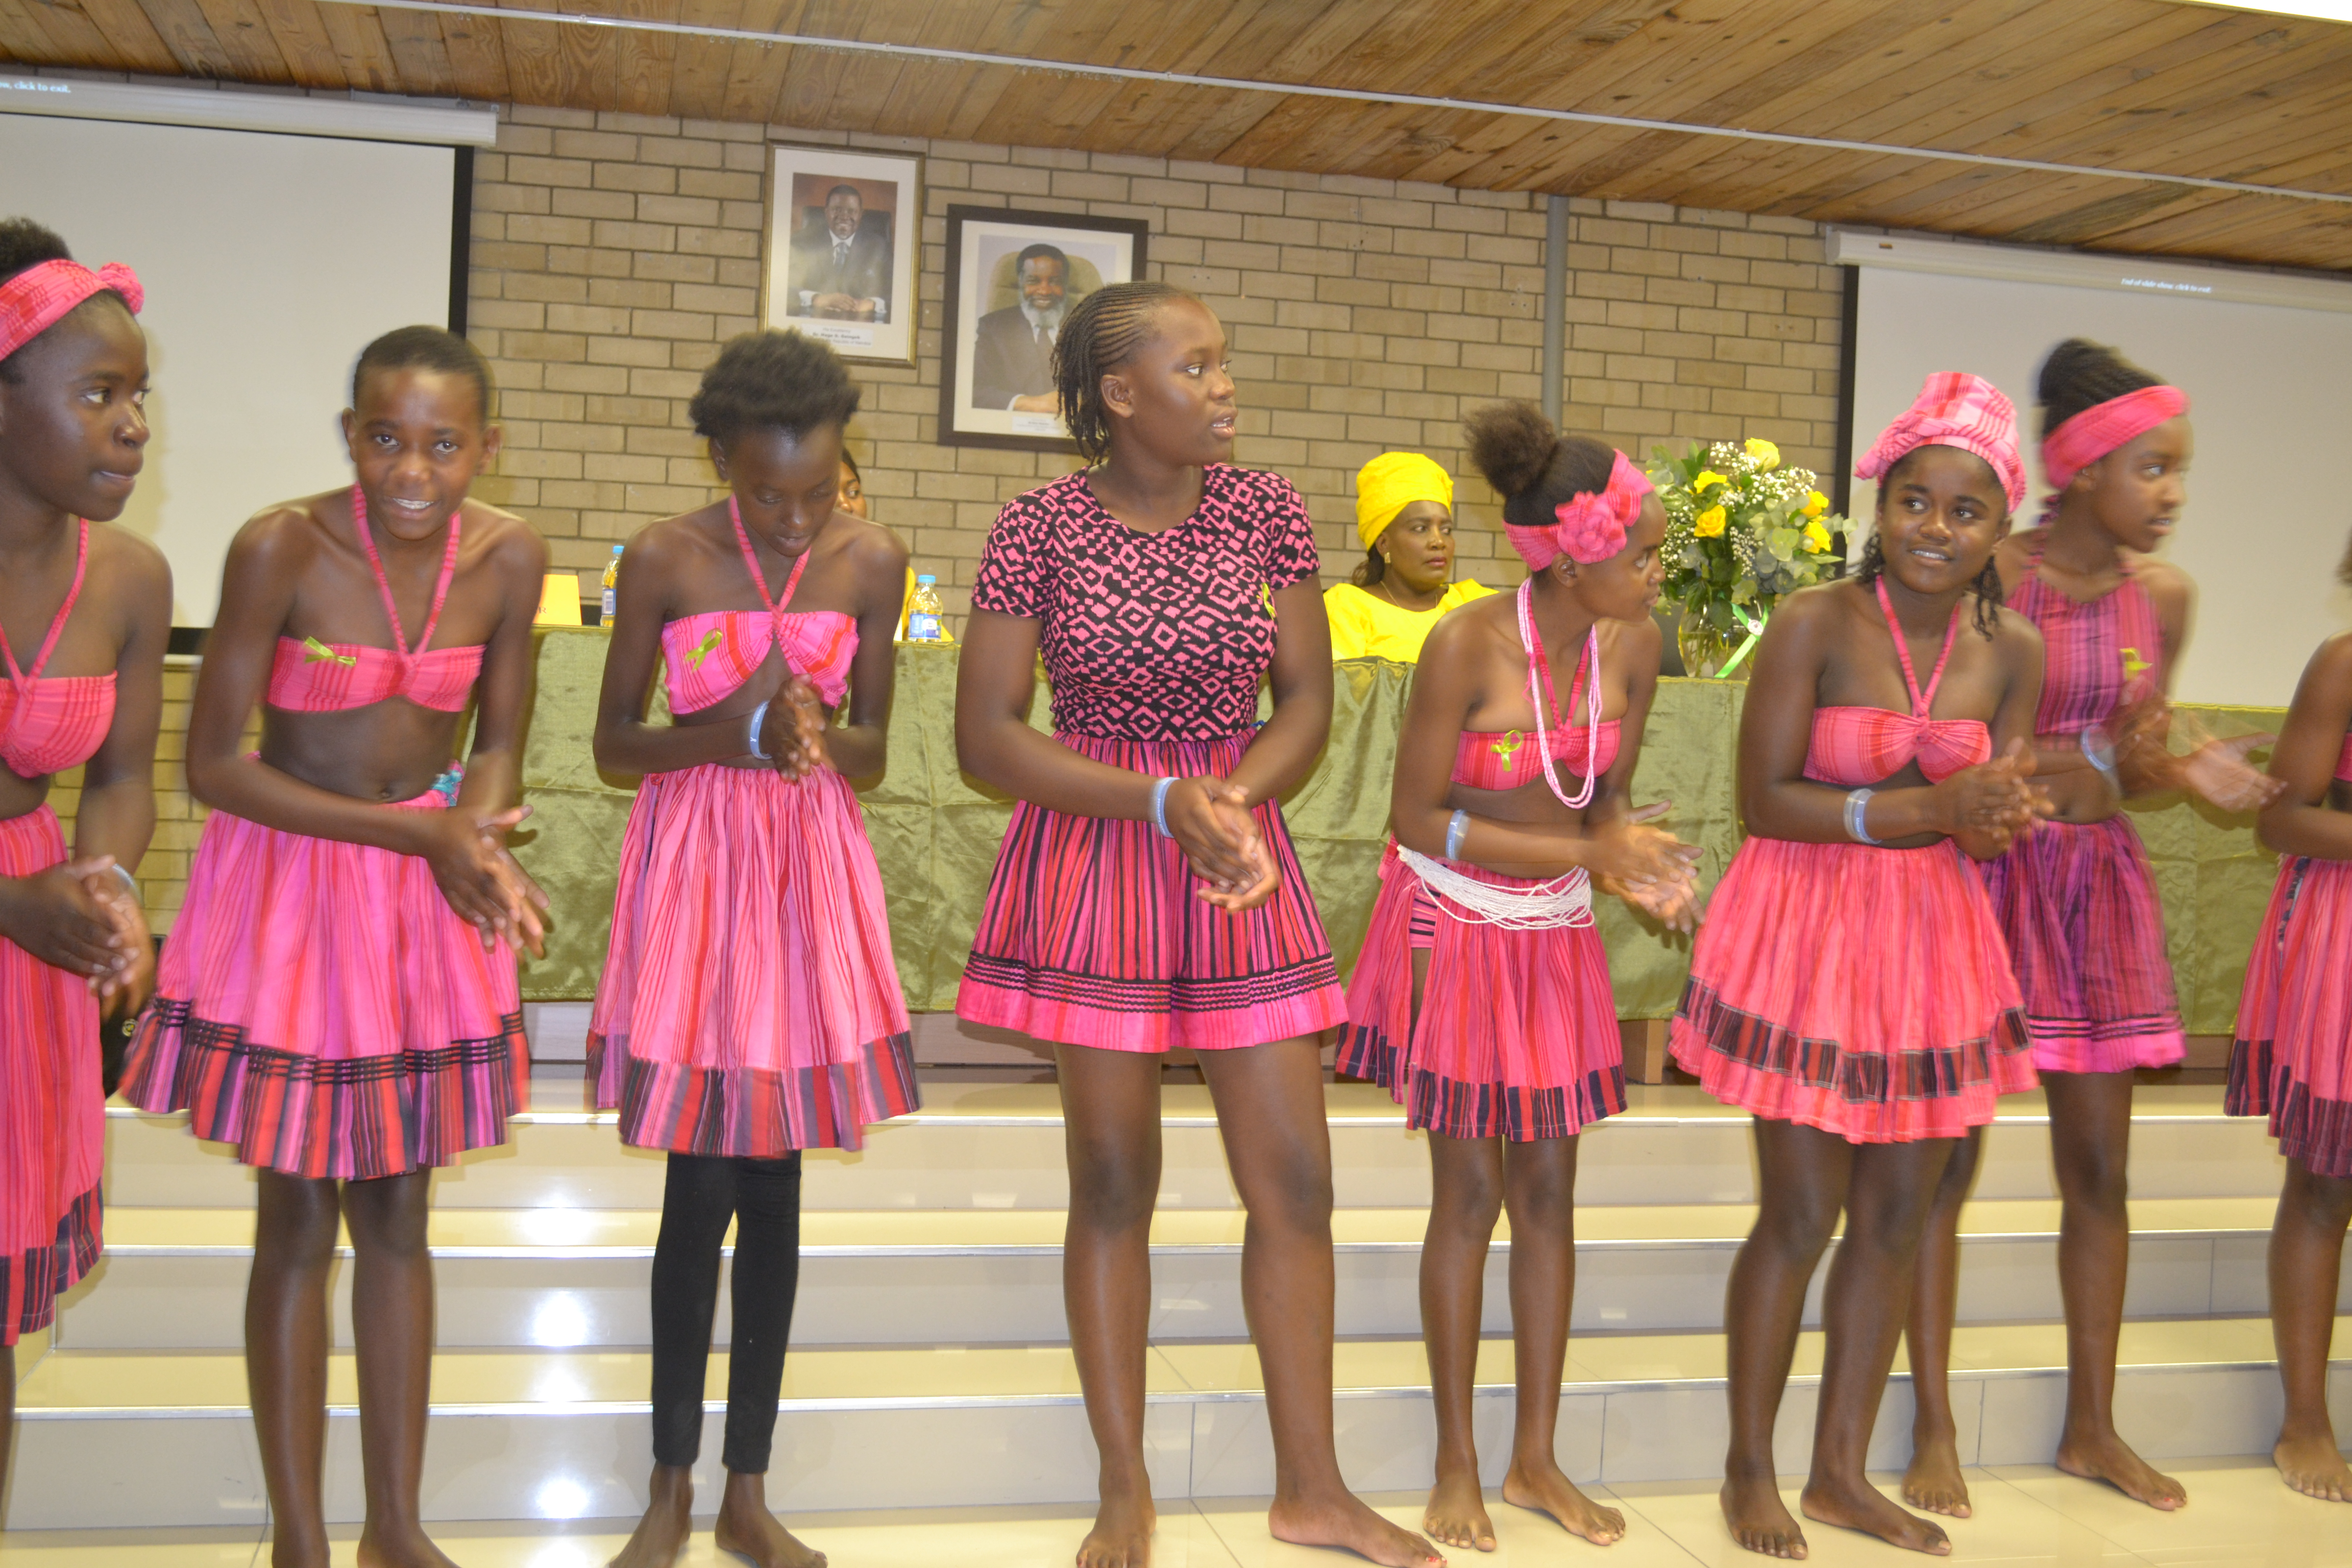 Learners from the David Bezuidenhout High School performing a traditional dance at the public lecture on World Mental Health Day